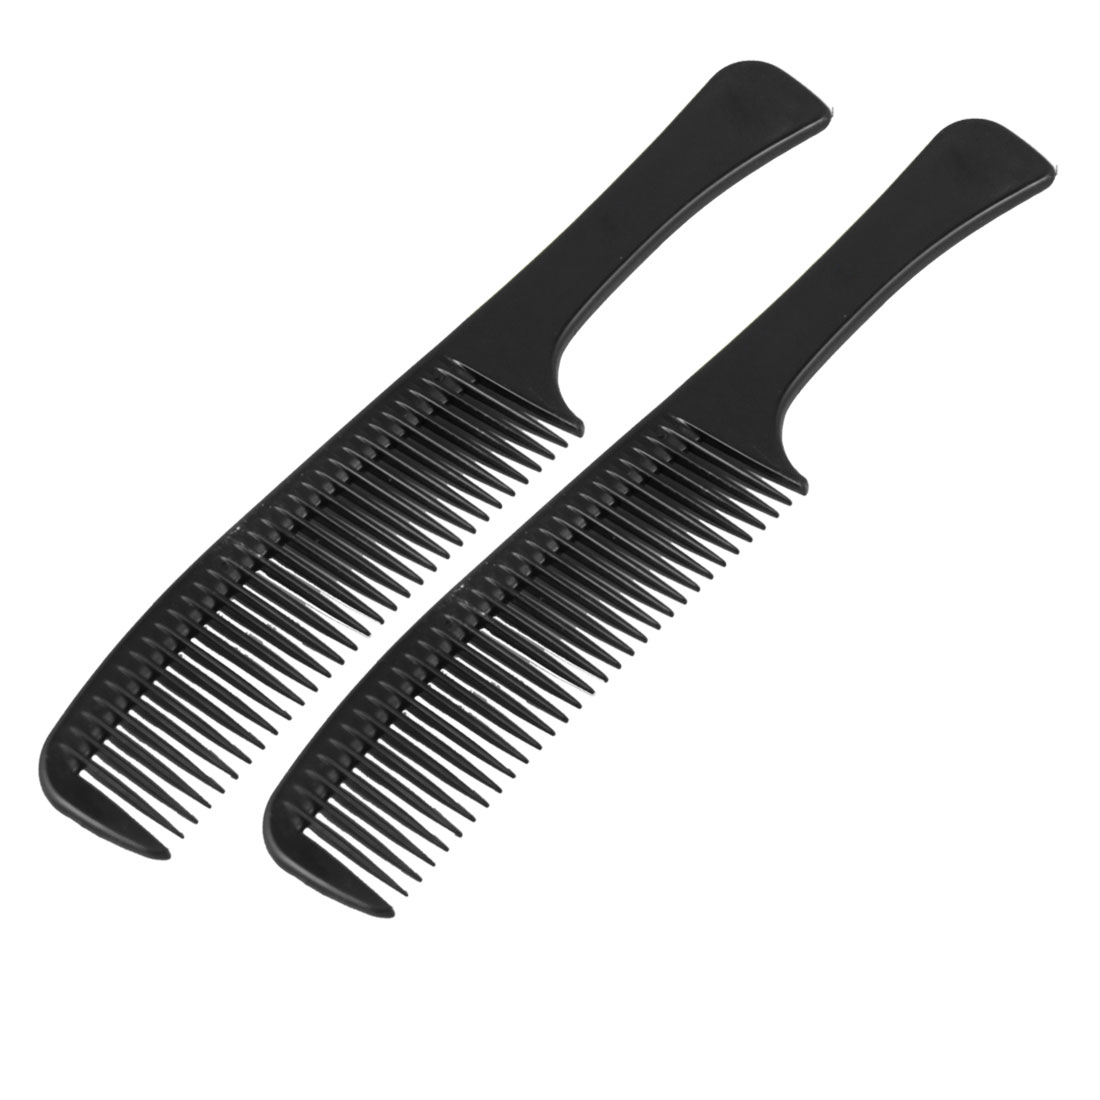 2 Pcs Hairstyle DIY Long Handle Plastic Curly Hair Care Handgrip Comb 9.1""